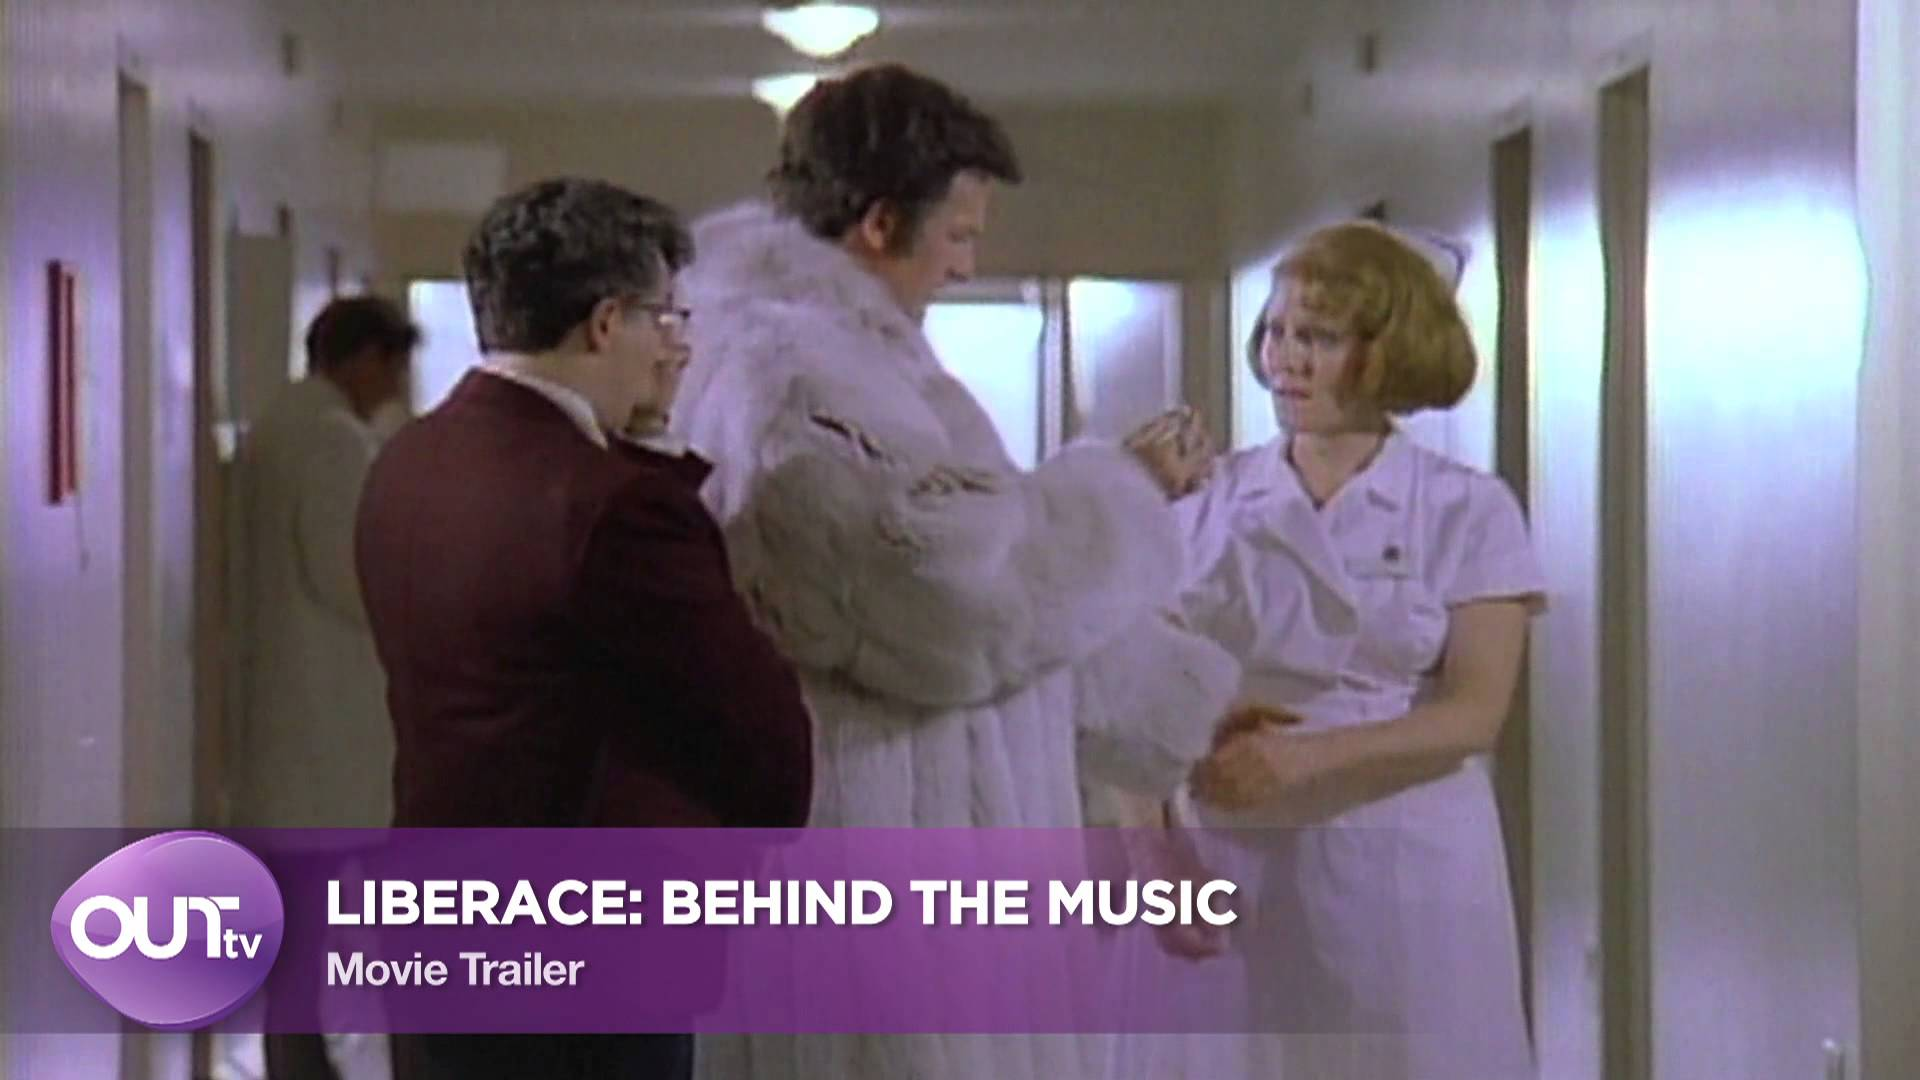 Liberace: Behind the Music | Movie Trailer